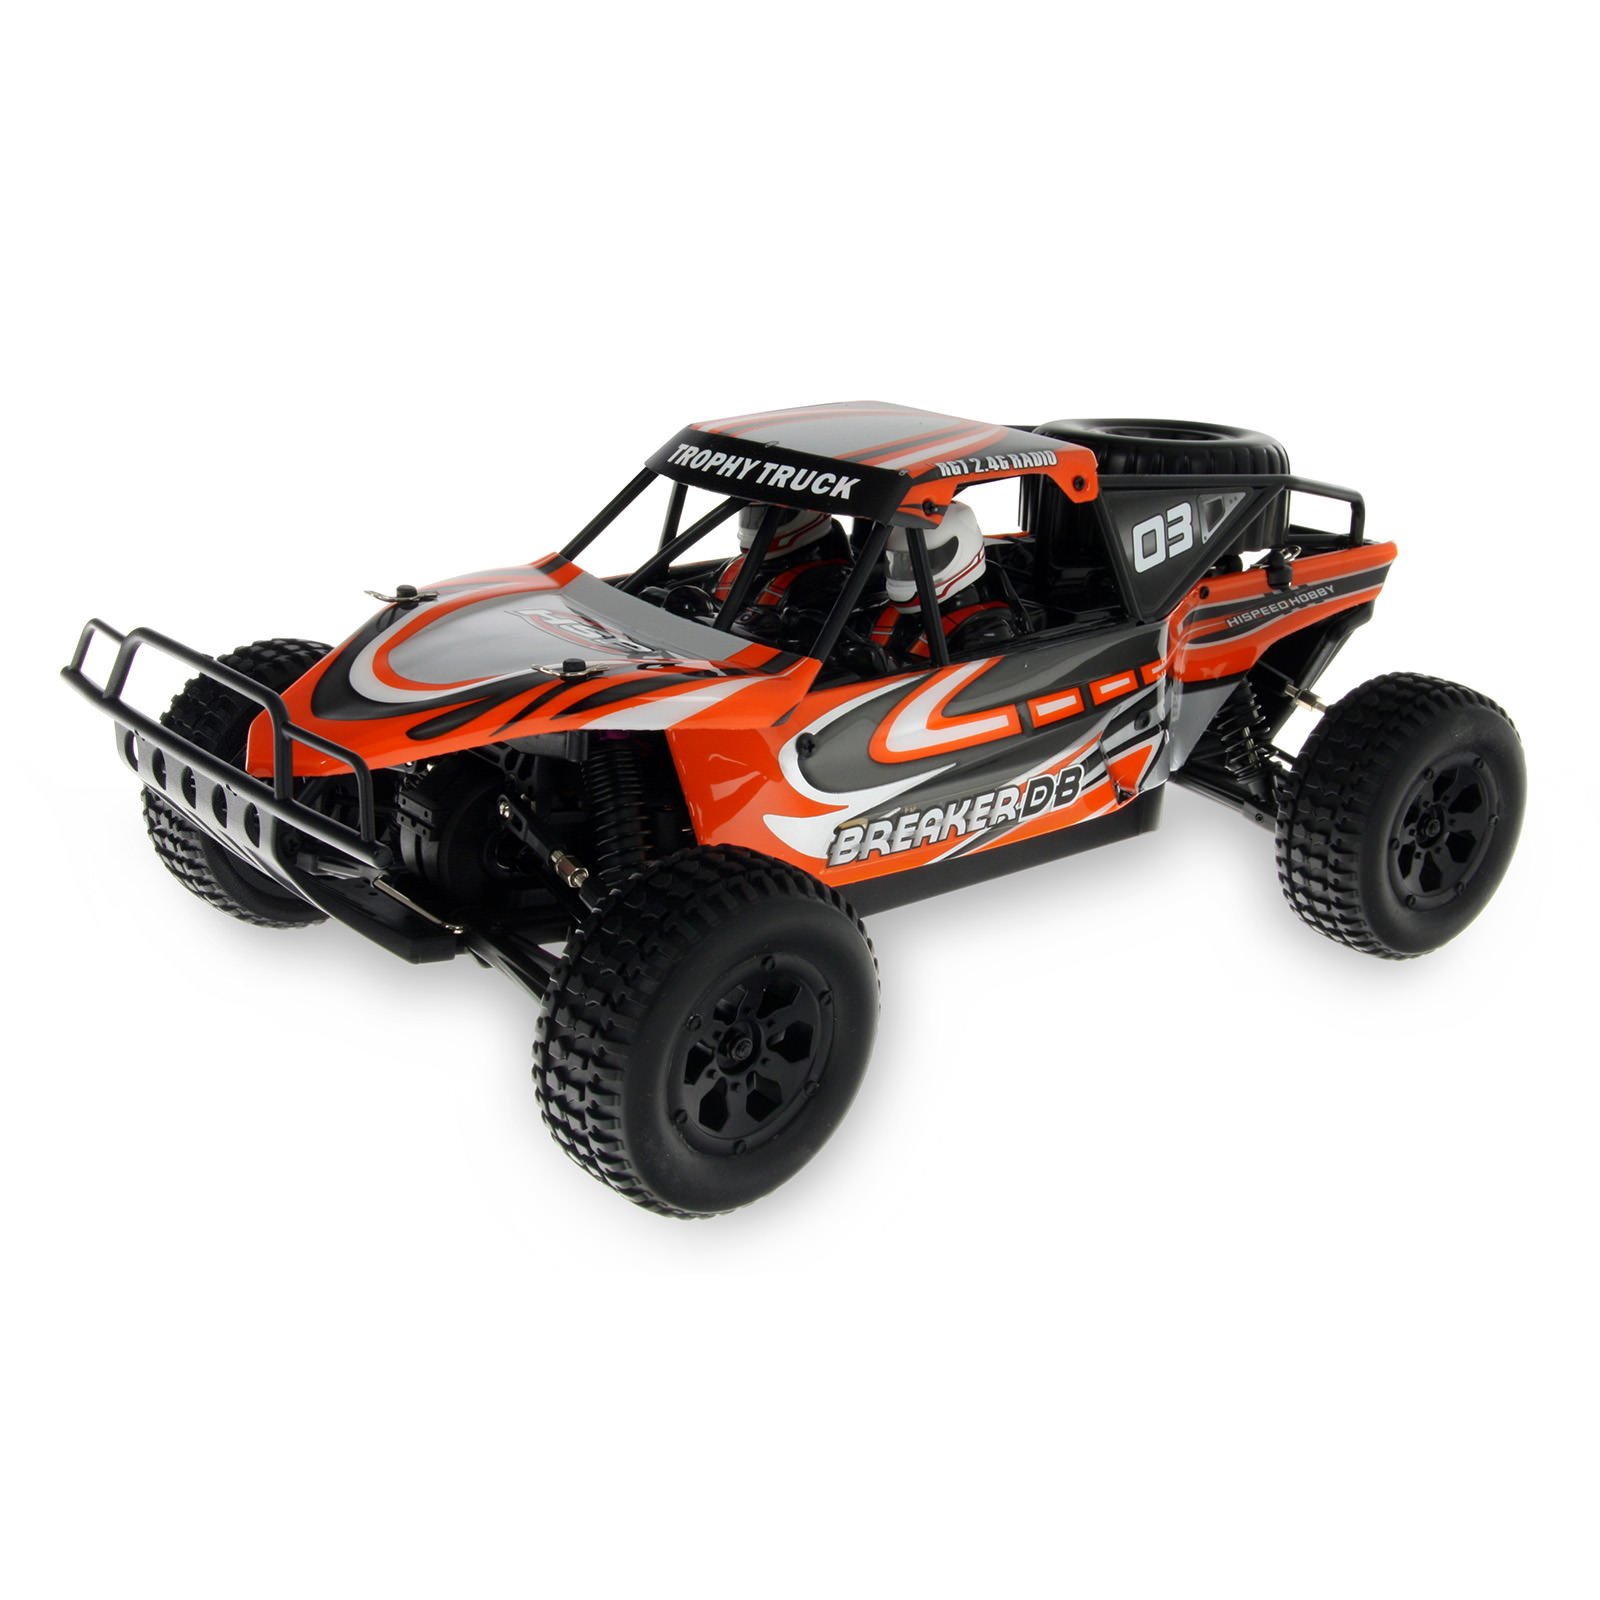 4wd rc trucks electric with Hsp 94201 20192 Orange Rc Trophy Truck on 151778668300 in addition 1 12 Scale Rc Car Body further 201218966569 together with RemoteControlConstructionFrontEndLoaderRCTruck besides Associated 118 Scale Rtr Short Course Truck.